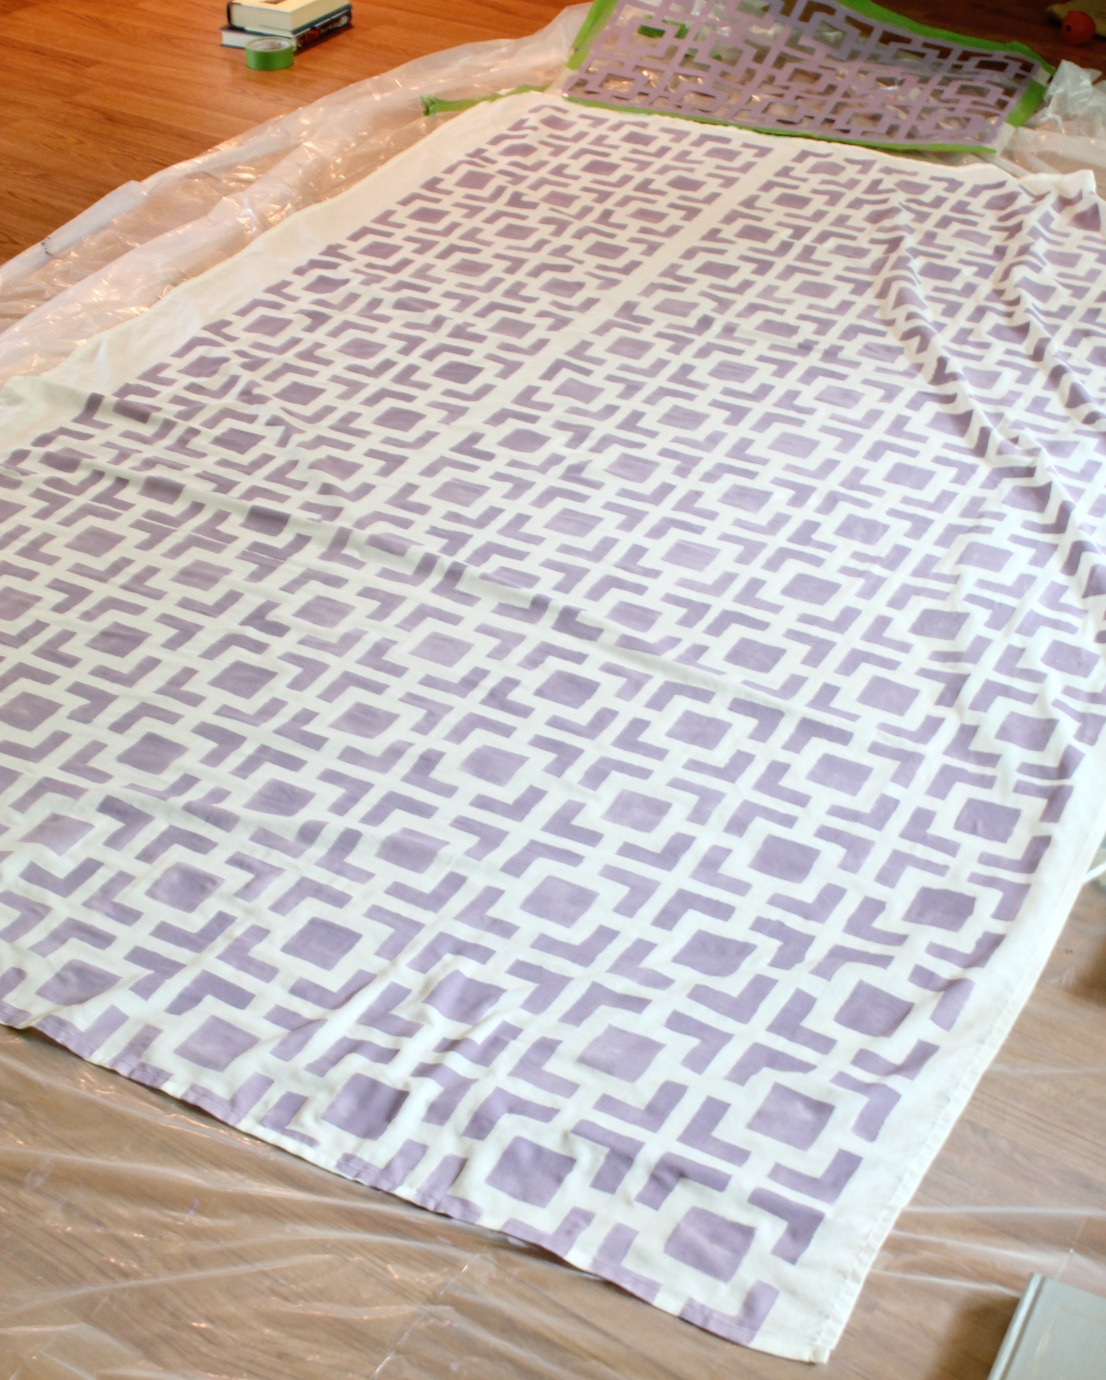 Stenciled Tablecloth - finished